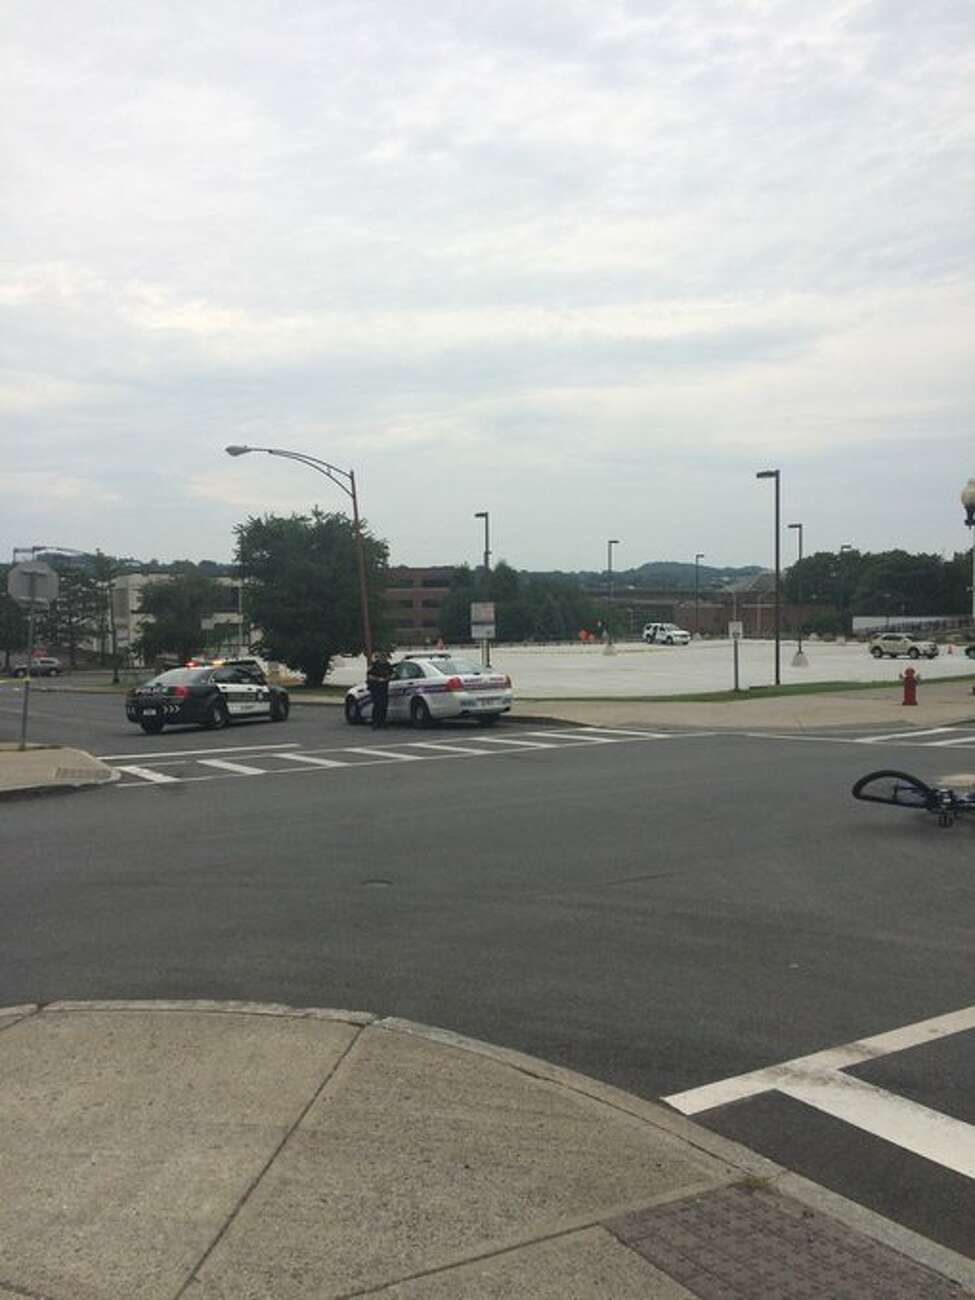 Albany police respond to bicycle and bus collision at corner of Wilson and N. Pearl streets on Saturday, July 22, 2017. (Leigh Hornbeck/Times Union)